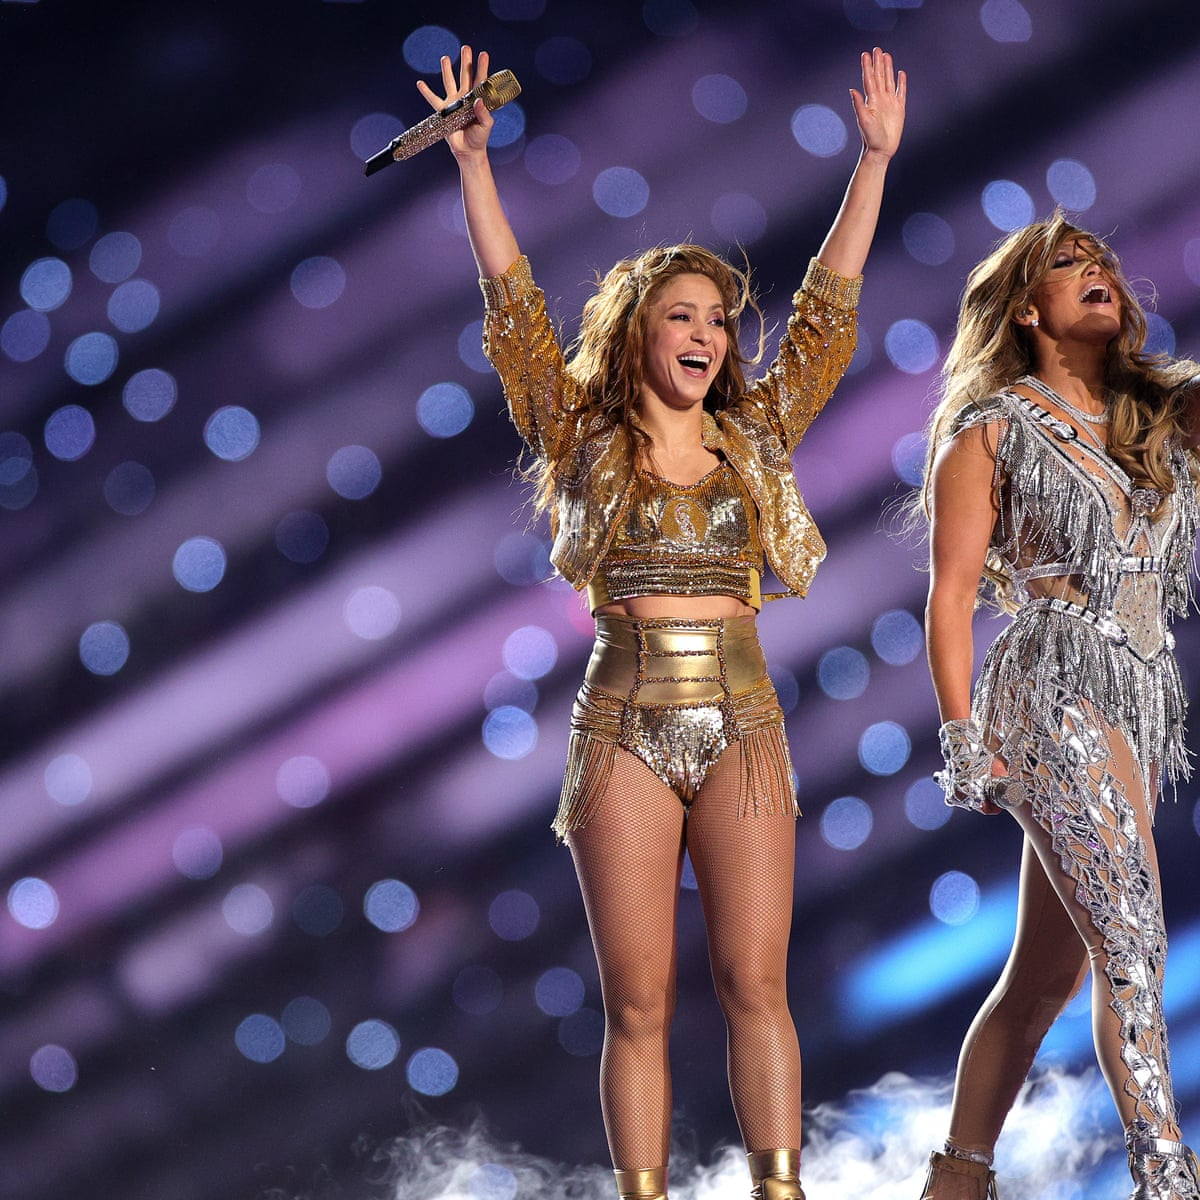 Super Bowl Ads And Half Time Show Shakira And J Lo Team Up For Dazzling Performance As It Happened Culture The Guardian